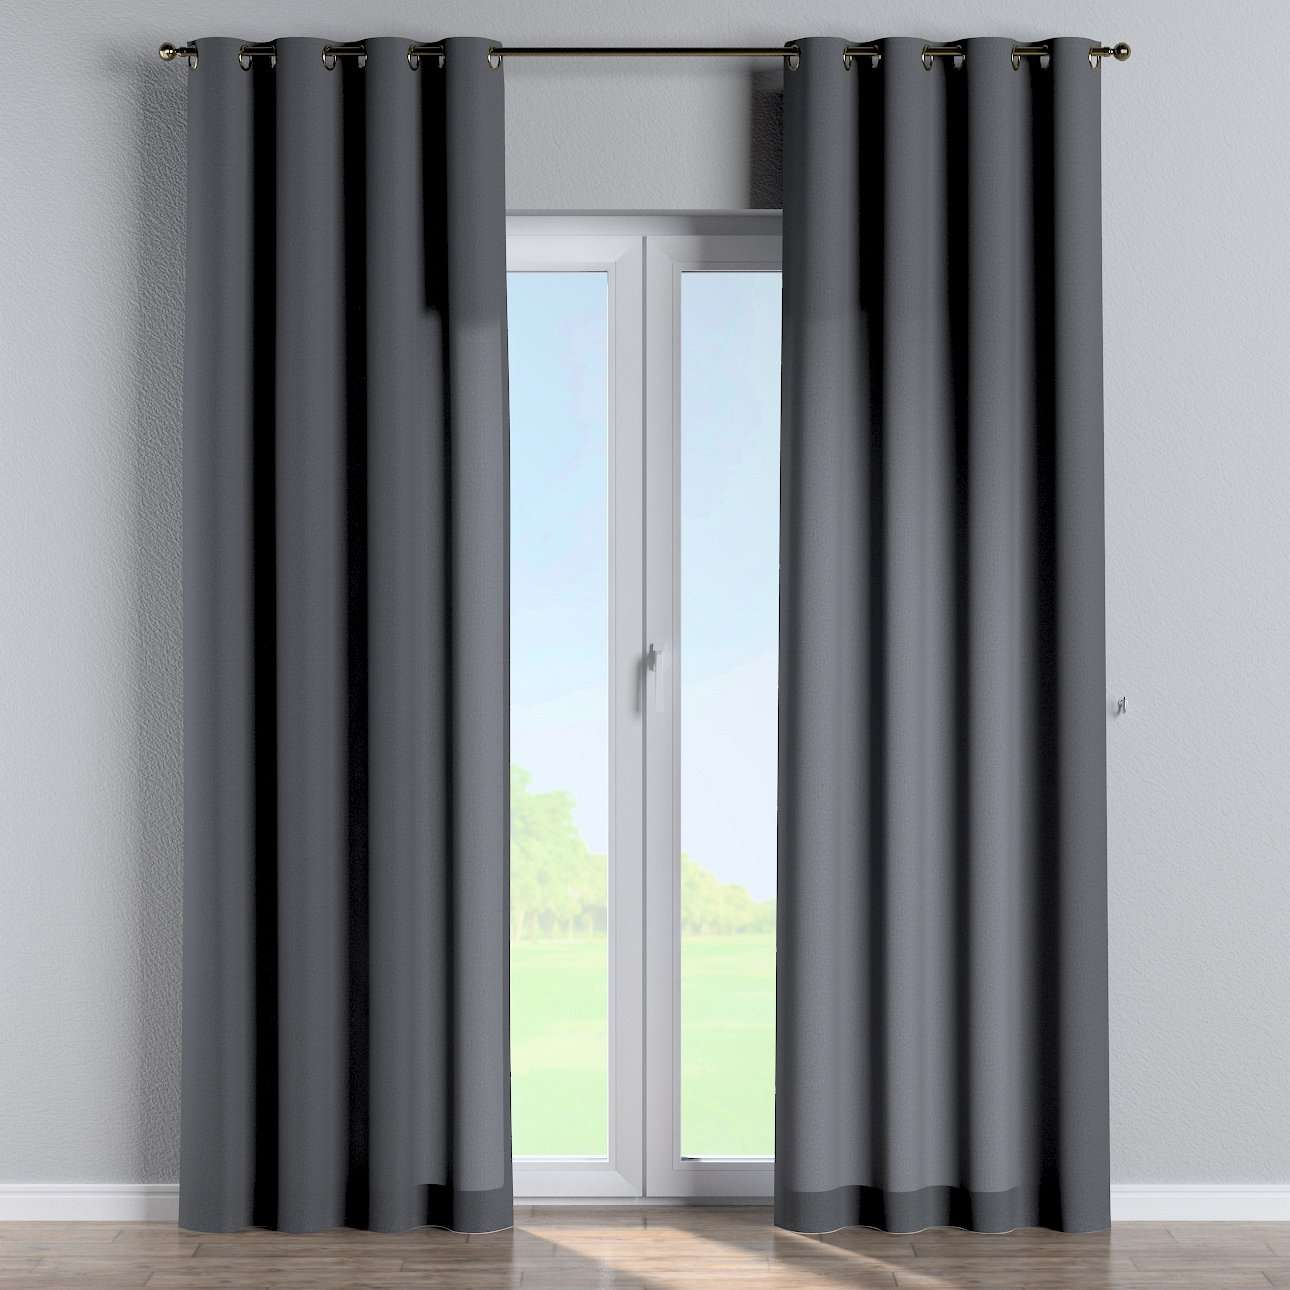 Eyelet curtains in collection Woolly, fabric: 142-34